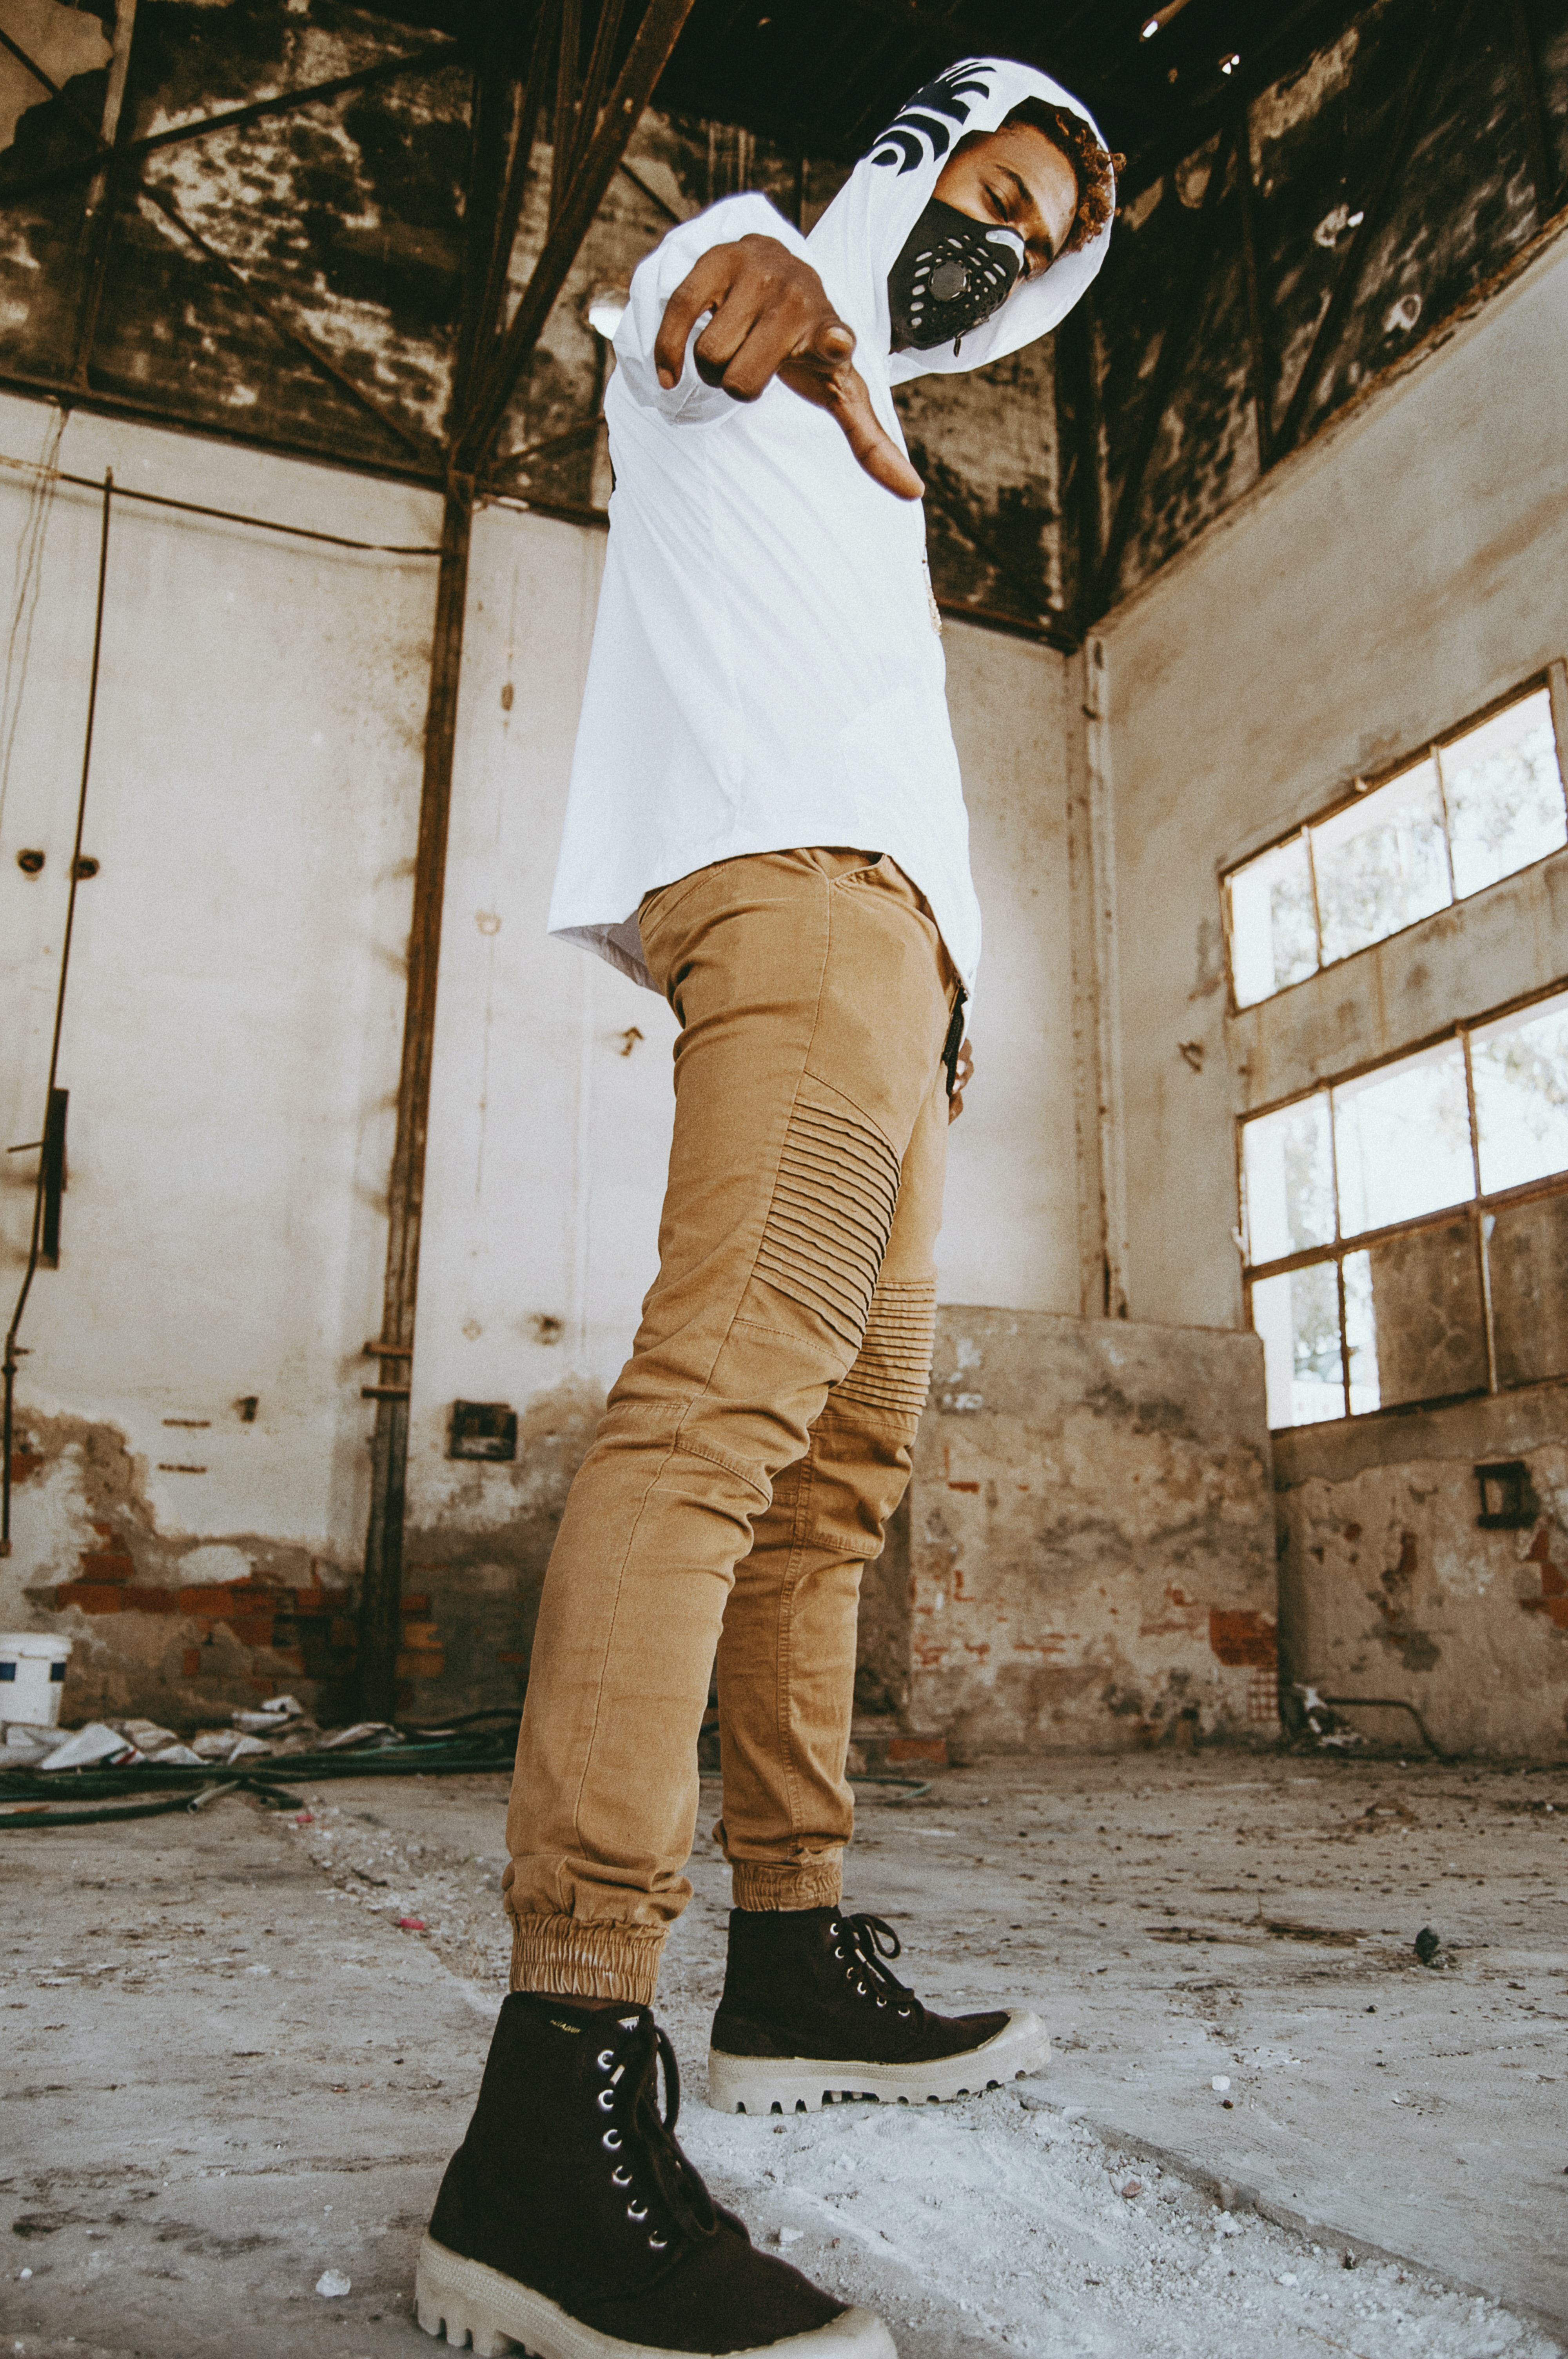 Man Wearing White Hoodie And Brown Skinny Jeans Standing Inside Abandoned Building Photo Free Image On Unsplash